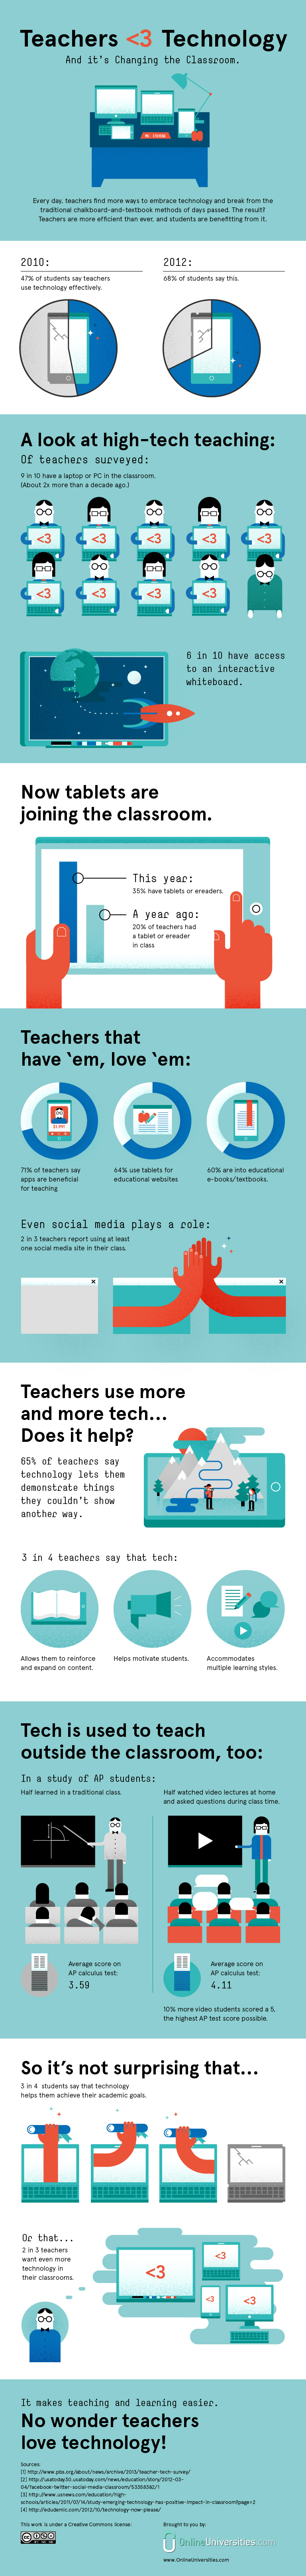 Are Teachers Using More Technology In Teaching